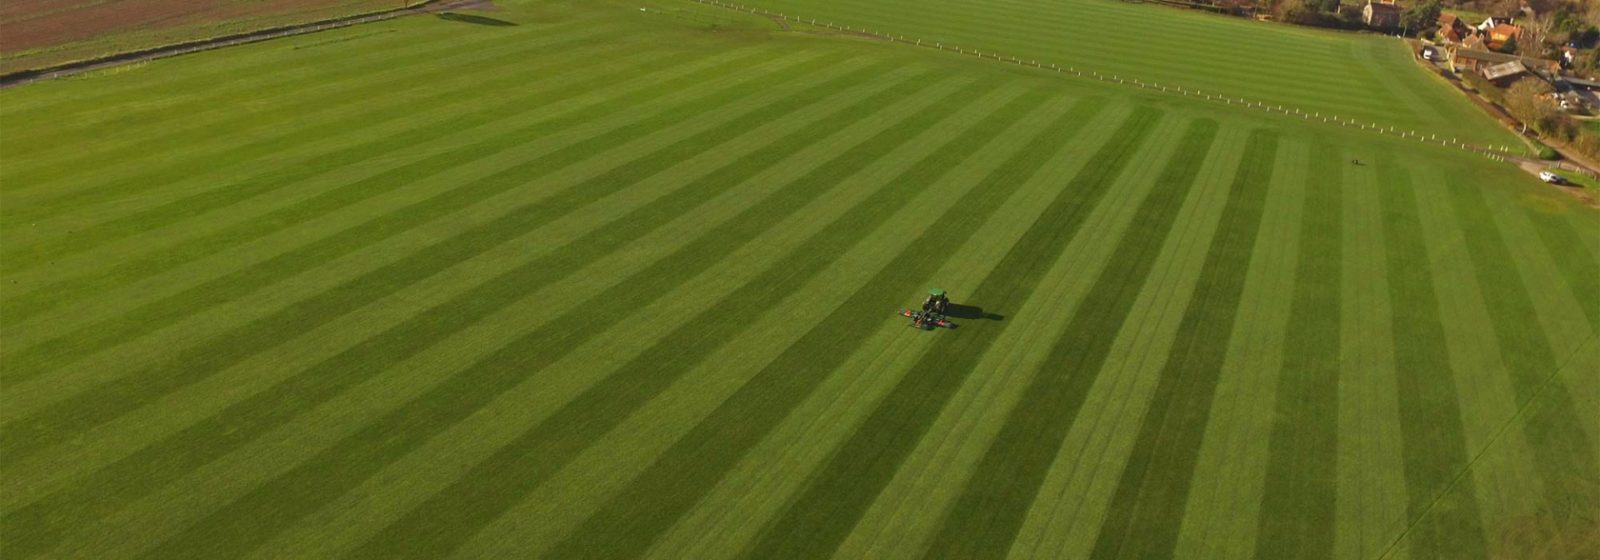 Commercial-mowers